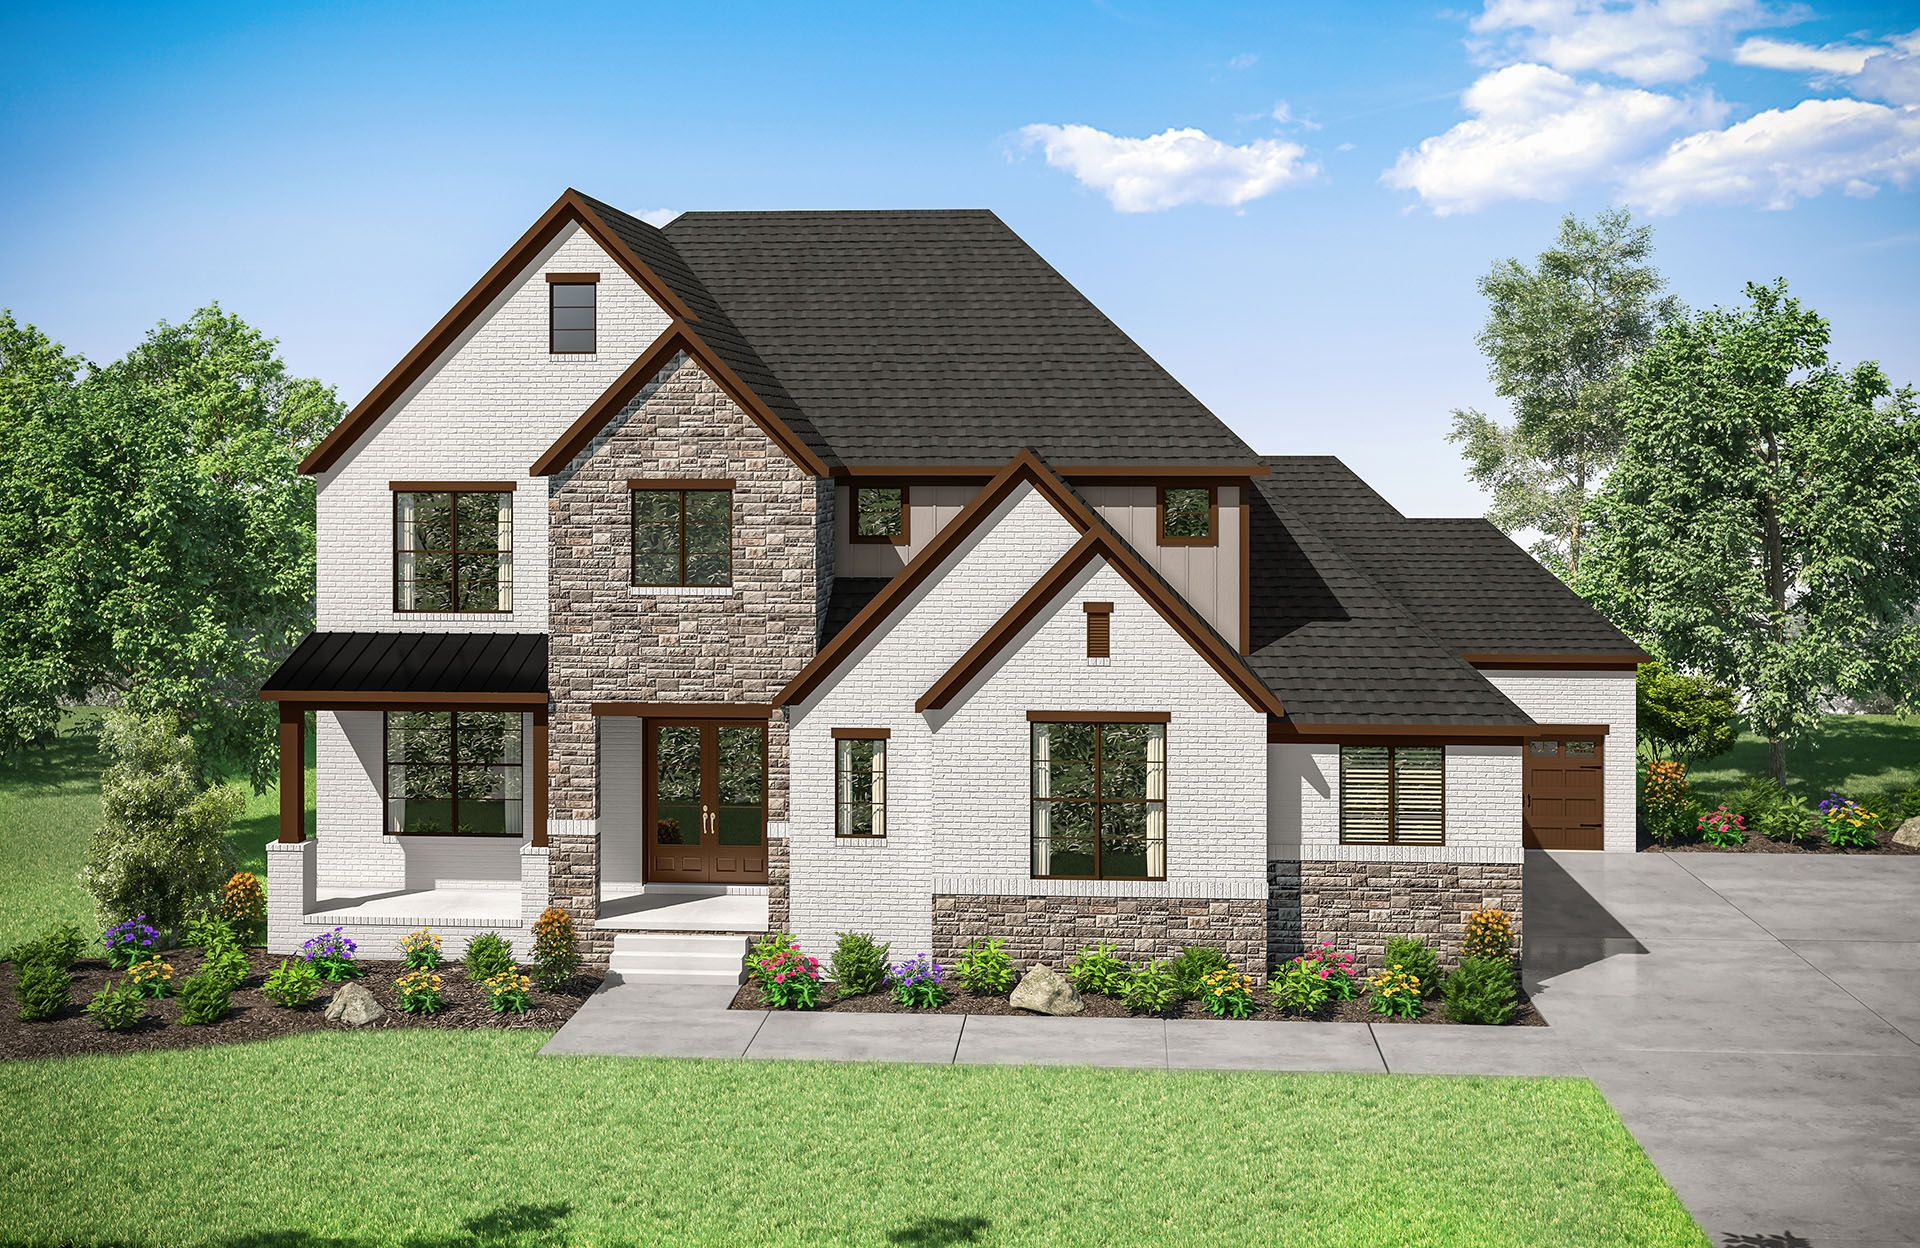 Belvidere A:brick, stone and front porch